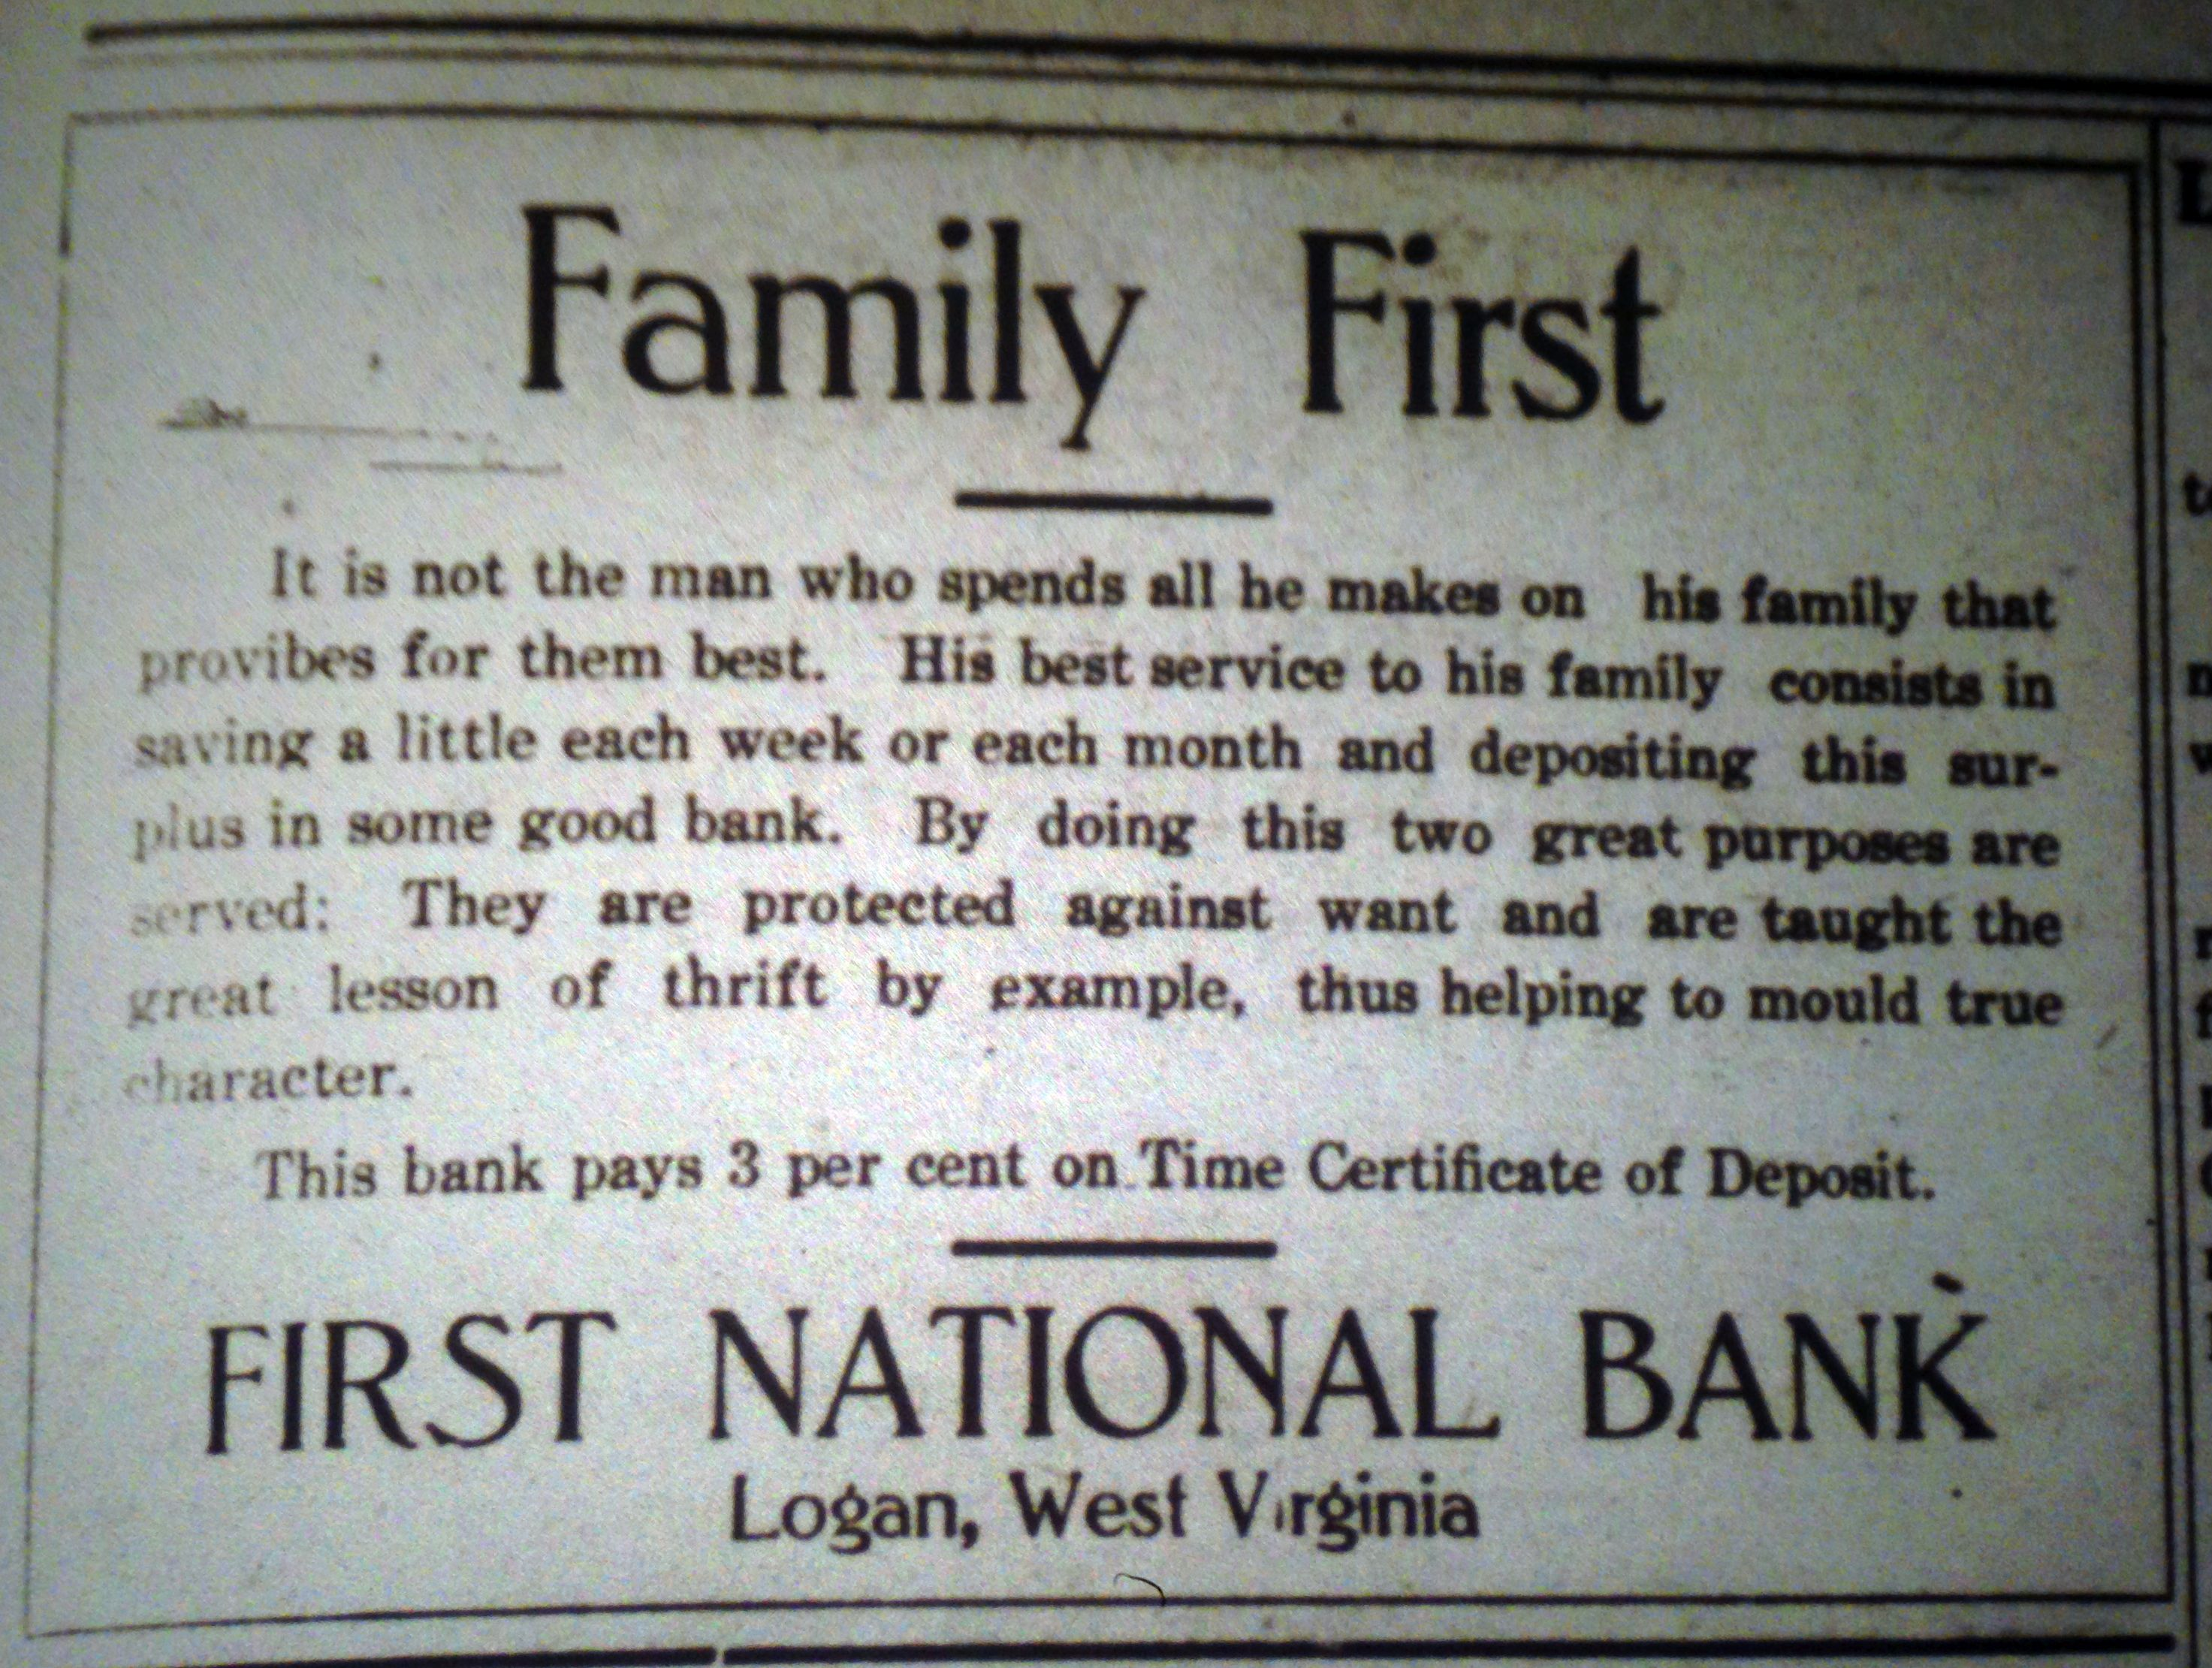 First National Bank Ad LD 01.02.1913.JPG